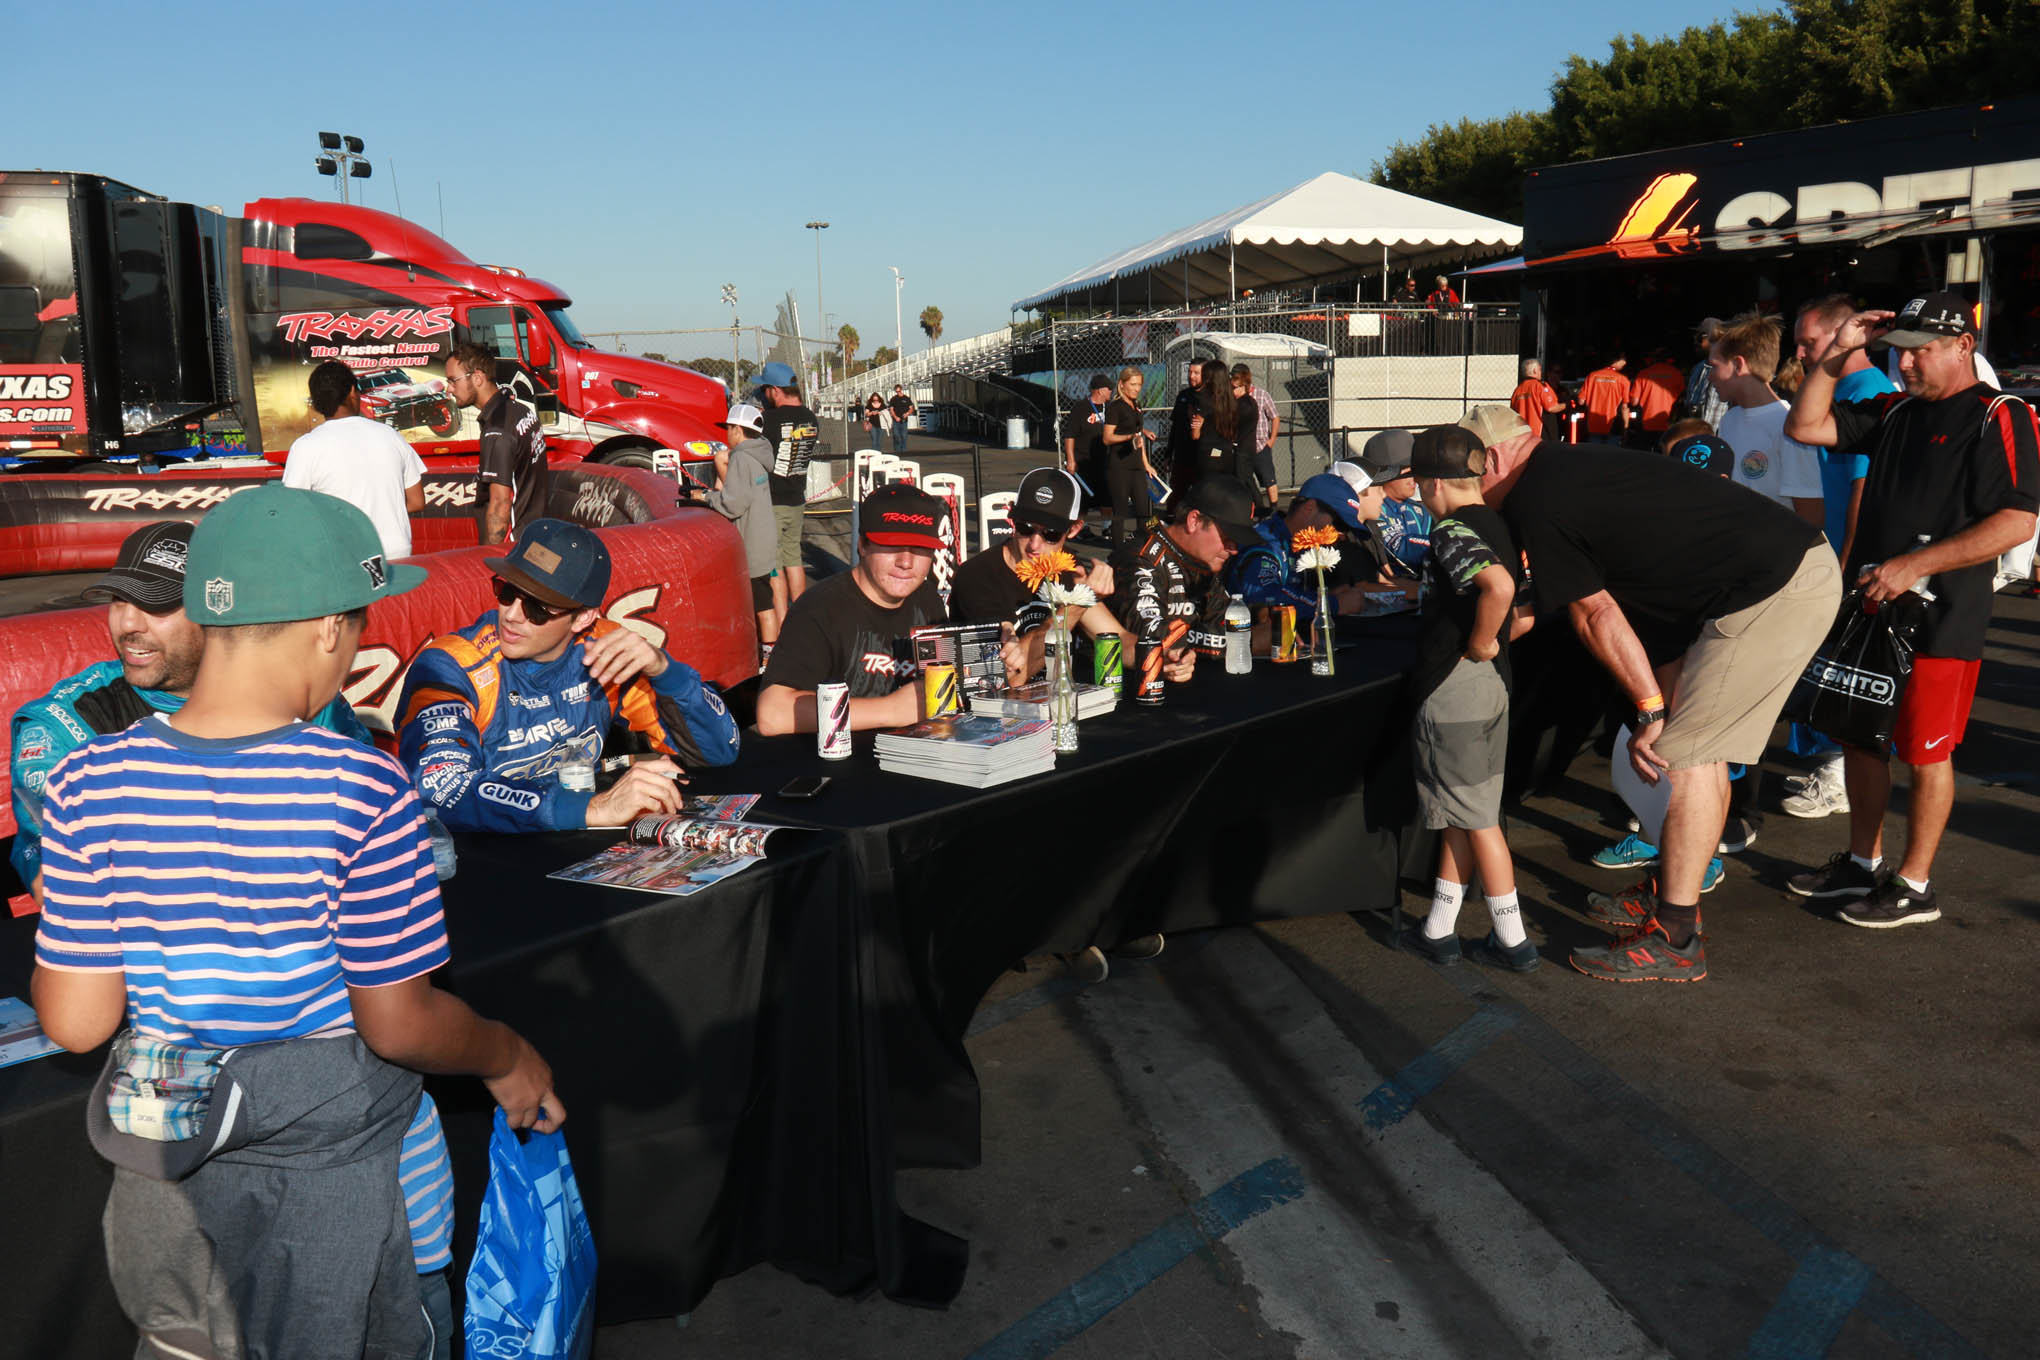 Robby Gordon and his Stadium Super Trucks racers were on hand to sign autographs prior to two nights of intense racing.